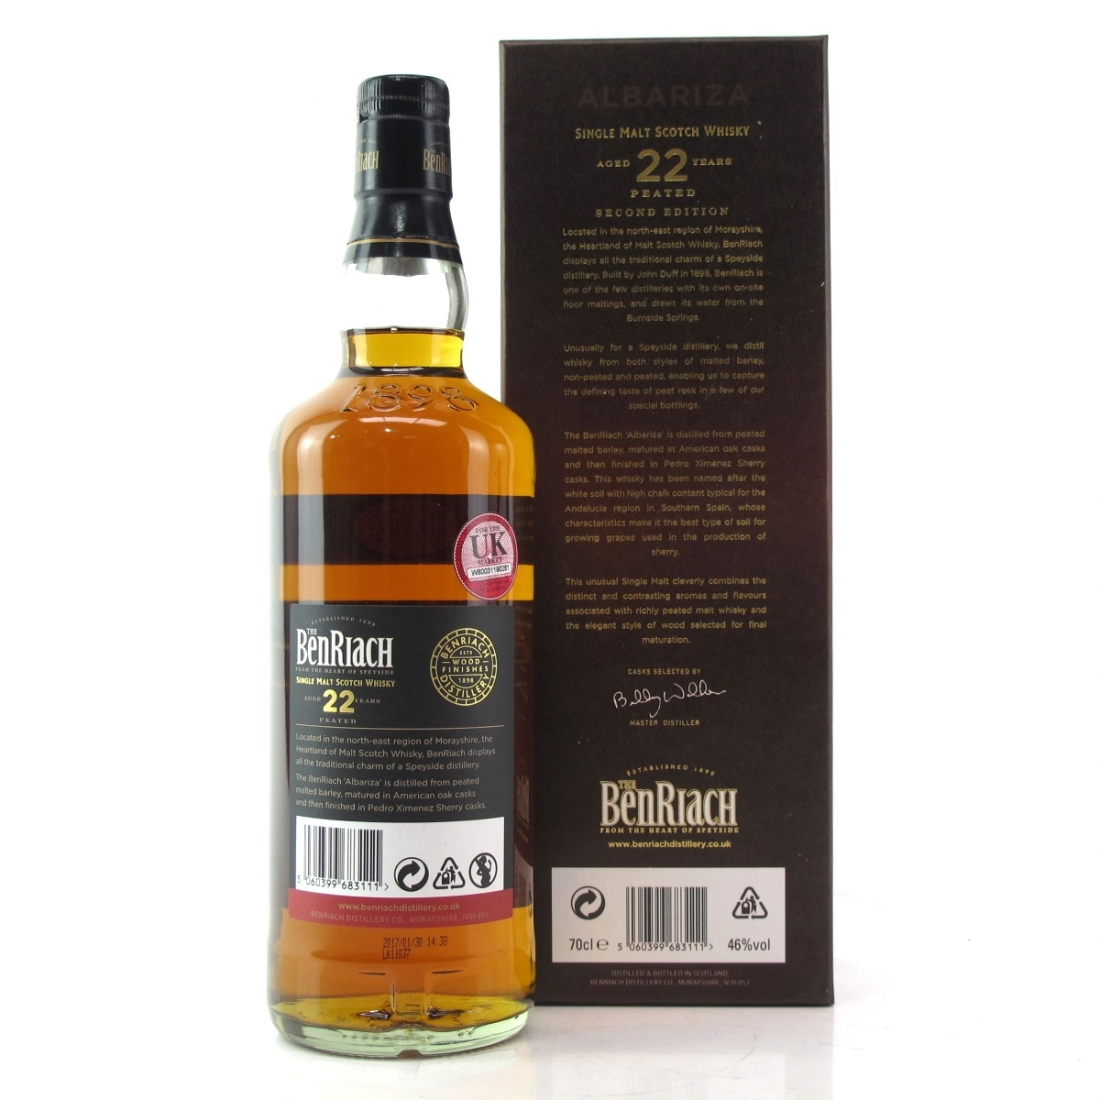 Benriach Albariza 22 Year Old Peated / PX Sherry Finish